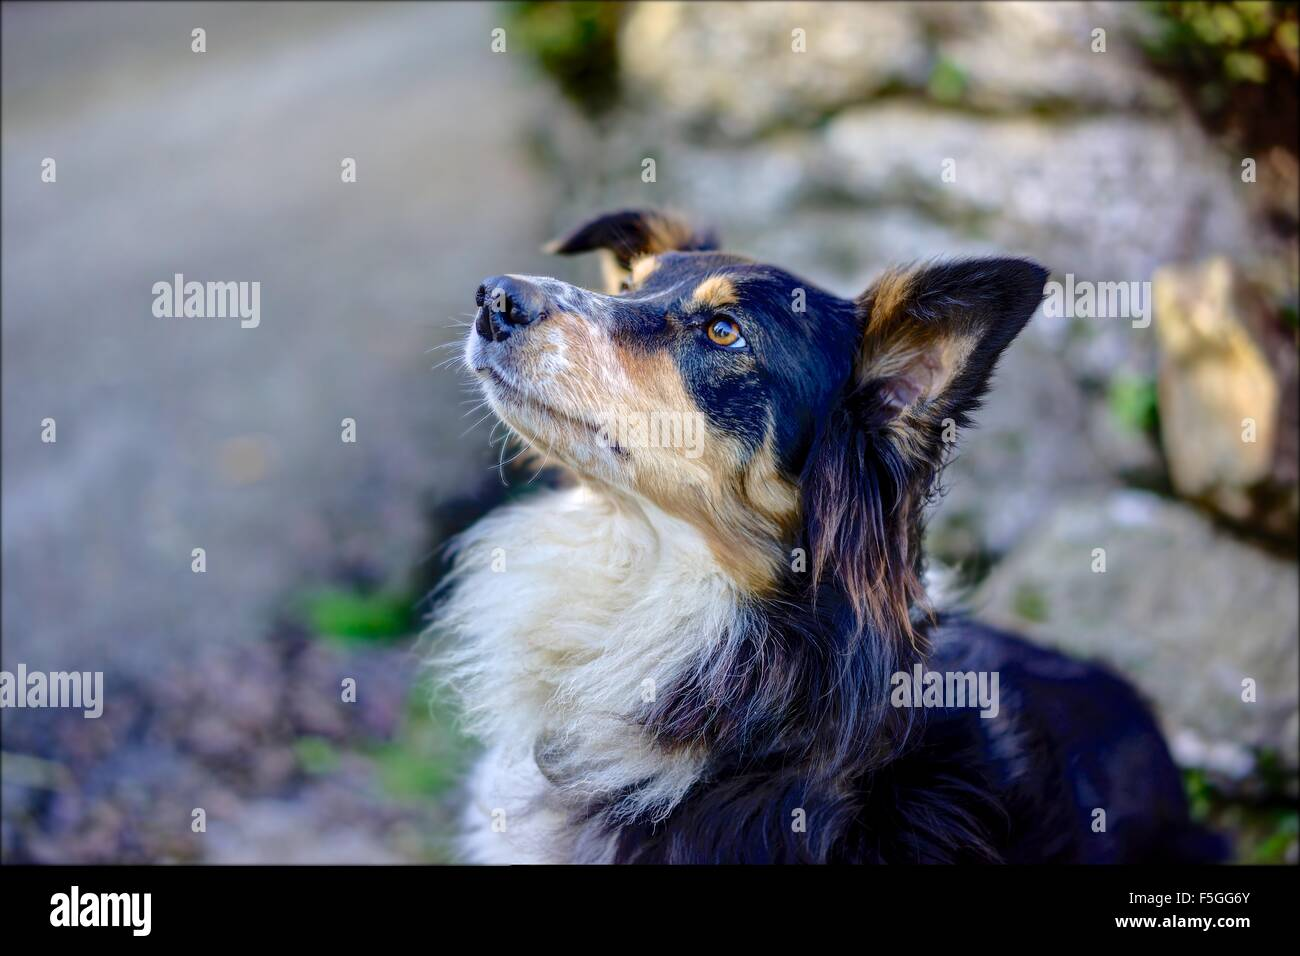 A sharply rendered Collie Cross dog, sitting obediently, waiting for her next command against a blurred background - Stock Image